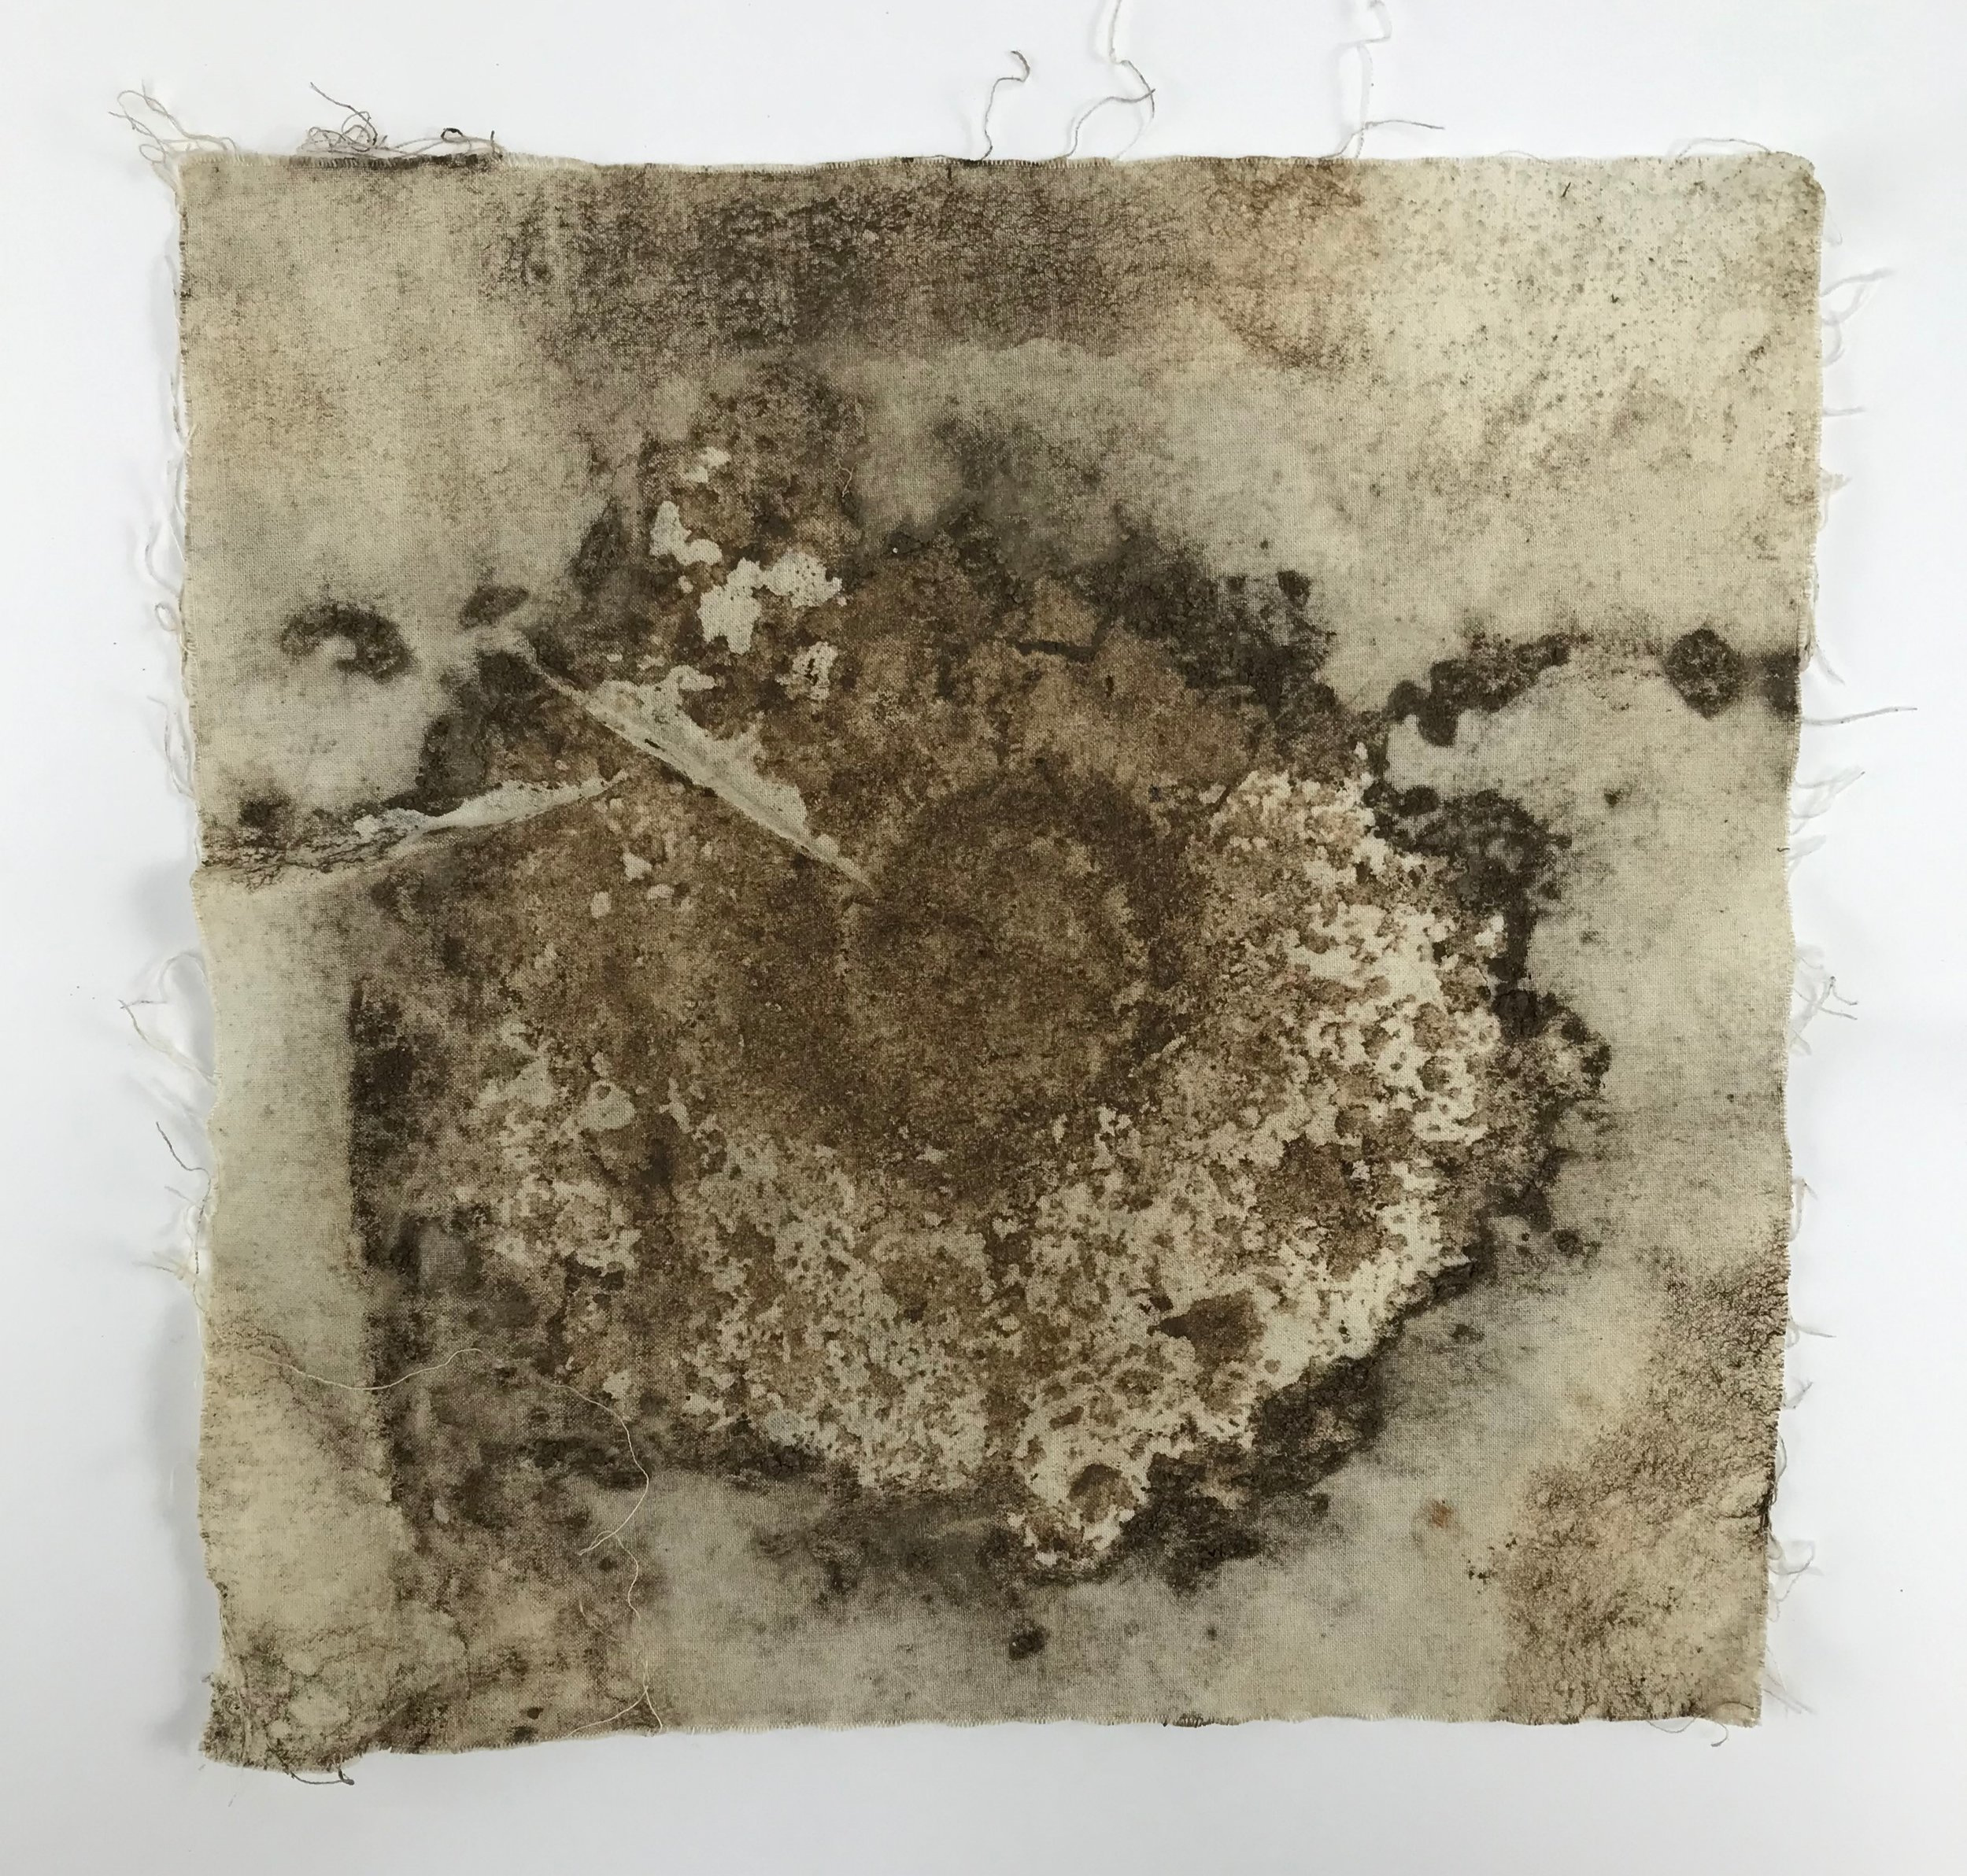 Image created from buried canvas and Ammonite fossil. Jacqueline Byrne.